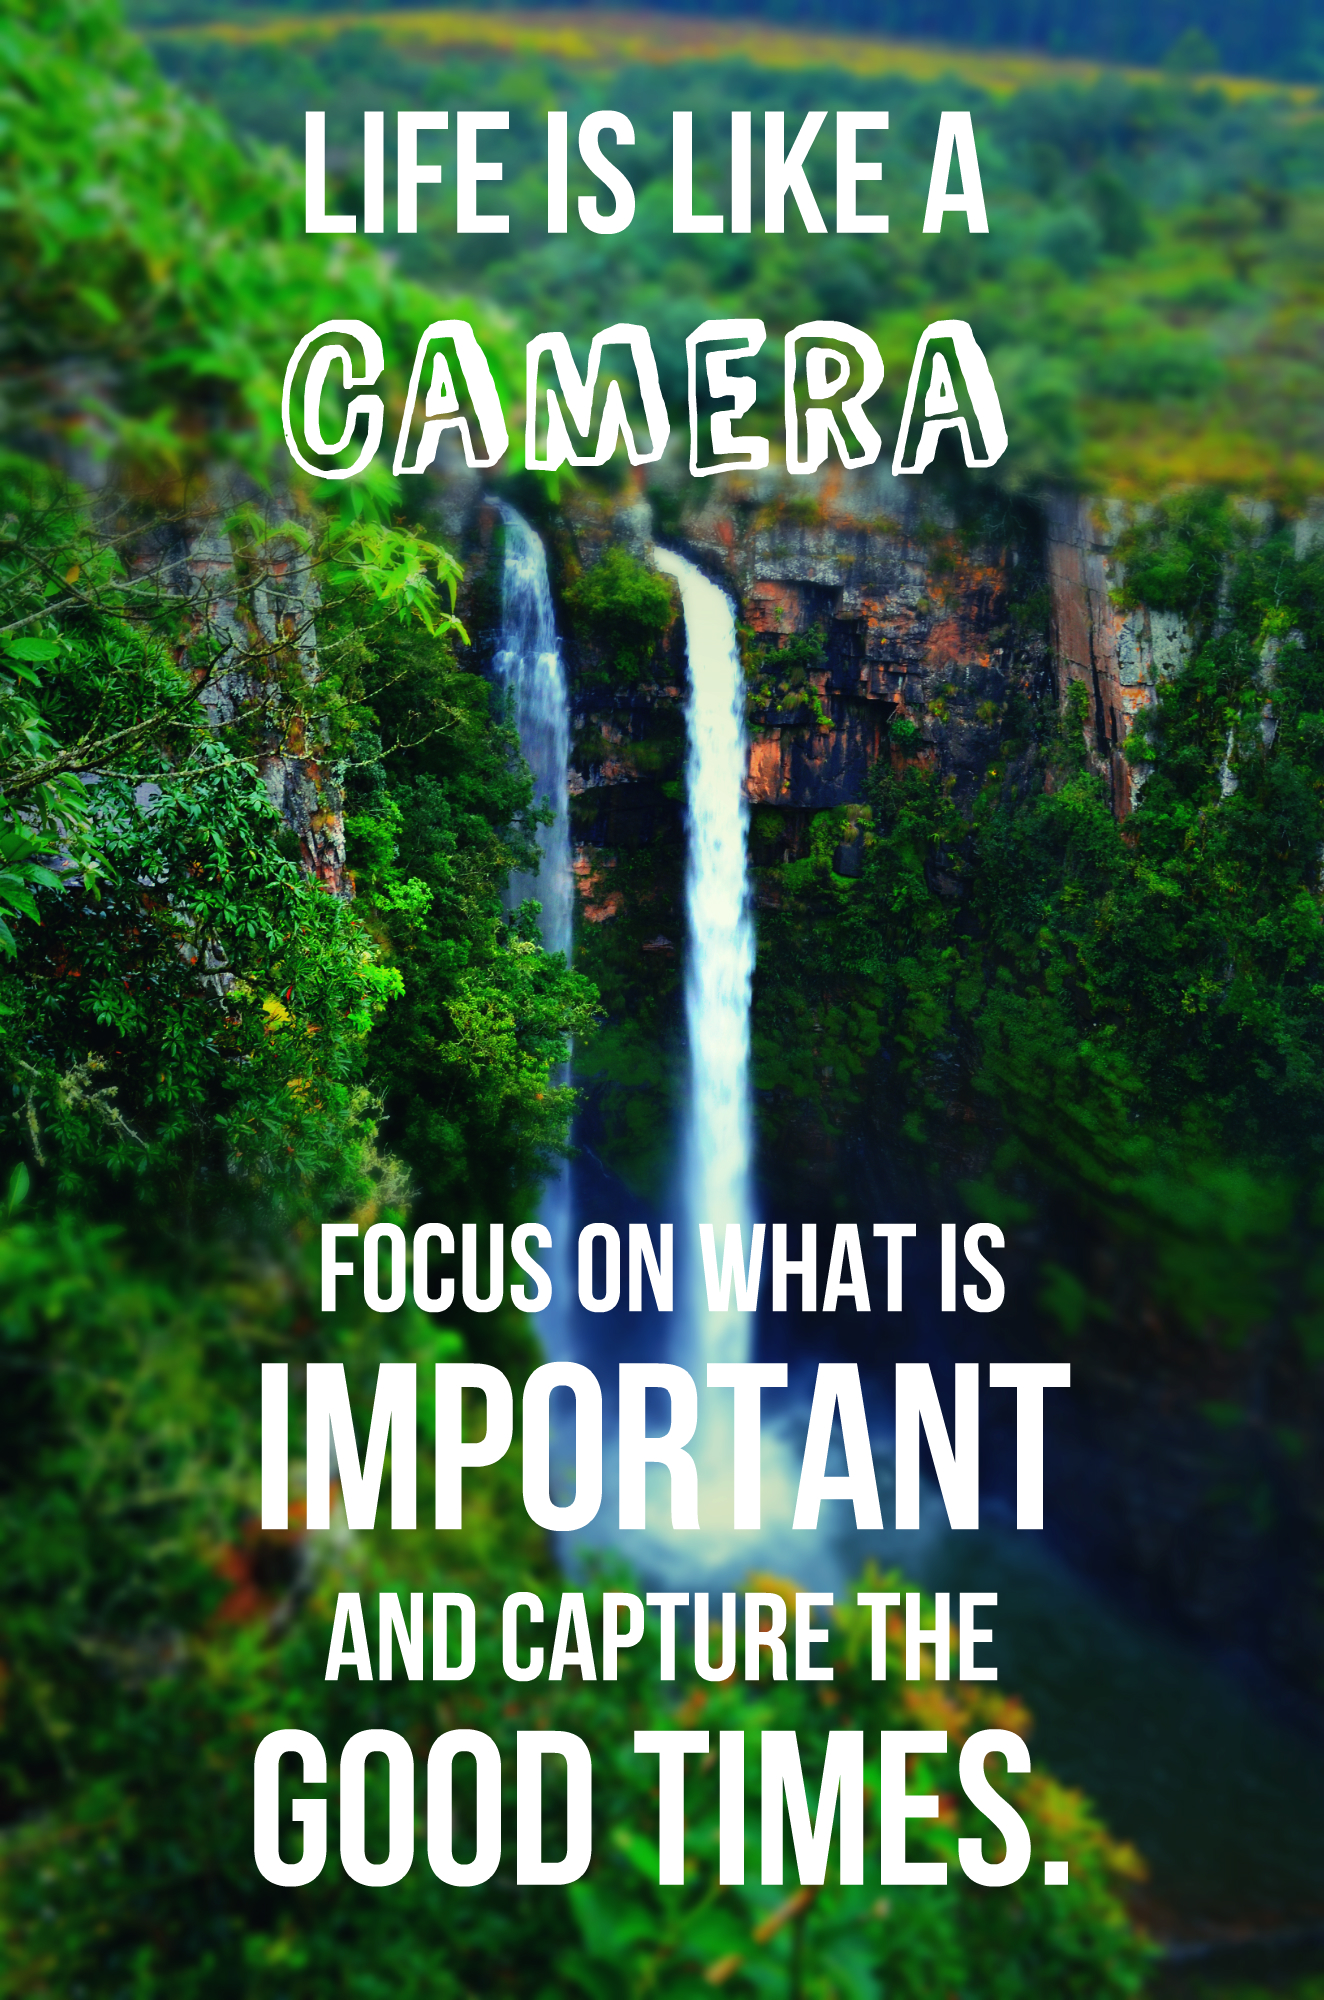 Life is like a camera. Focus on what's important. Capture the good times. And if things don't work out, just take another shot.